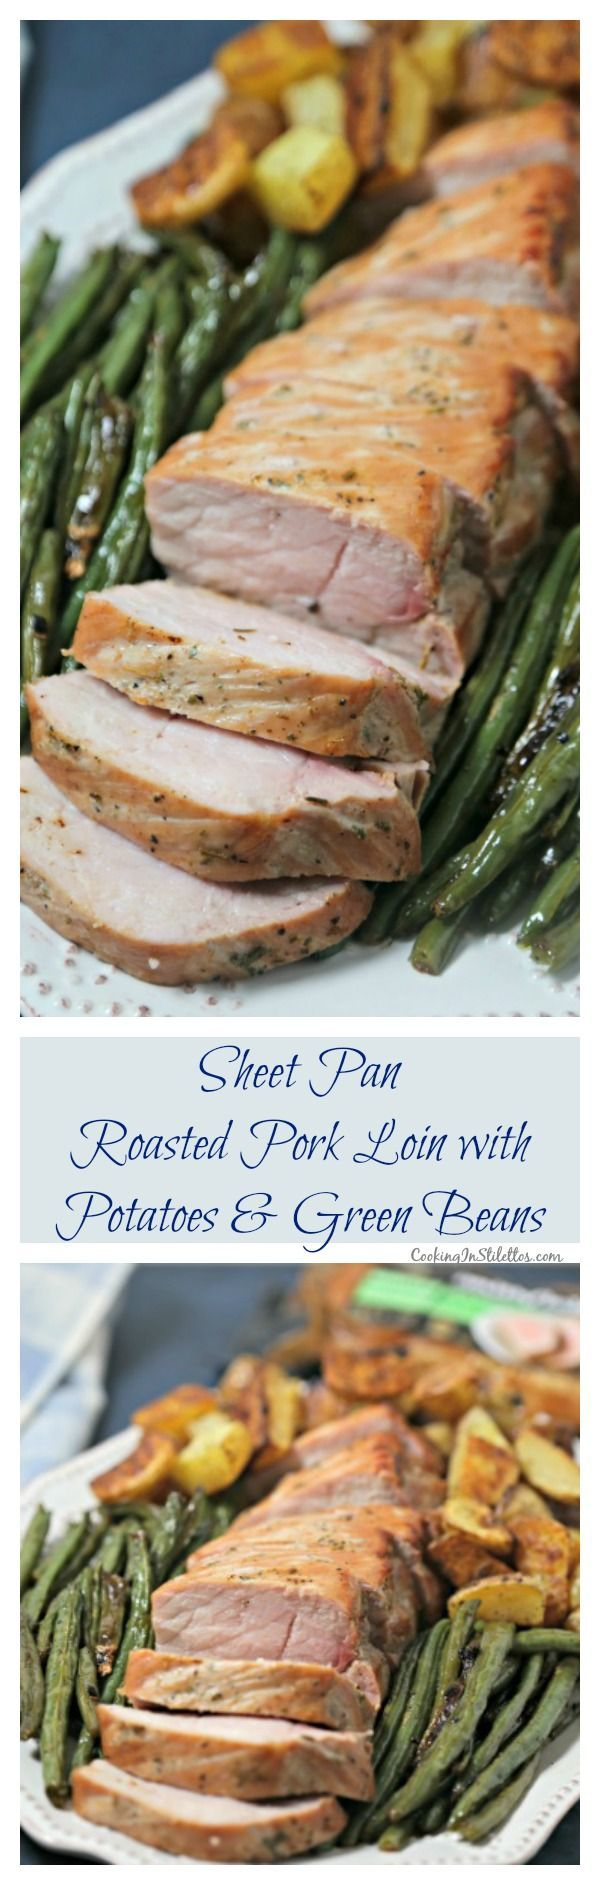 For busy weeknights, make this scrumptious Sheet Pan Roasted Pork Loin with Potatoes and Green Beans from CookingInStilettos.com. Ready in 30 minutes thanks to Smithfield®️️ Marinated Fresh Pork, this easy sheet pan dinner will be a family favorite!  #RealFlavorRealFast With @SmithfieldFoods and @Walmart. #AD | Roasted Pork Loin | Sheet Pan Dinner | 30 Minute Meal | Weeknight Dinner  | Pork | Oven Roasted Pork | Pork Loin Filet | Smithfield Pork | Sheet Pan Recipe via @CookInStilettos